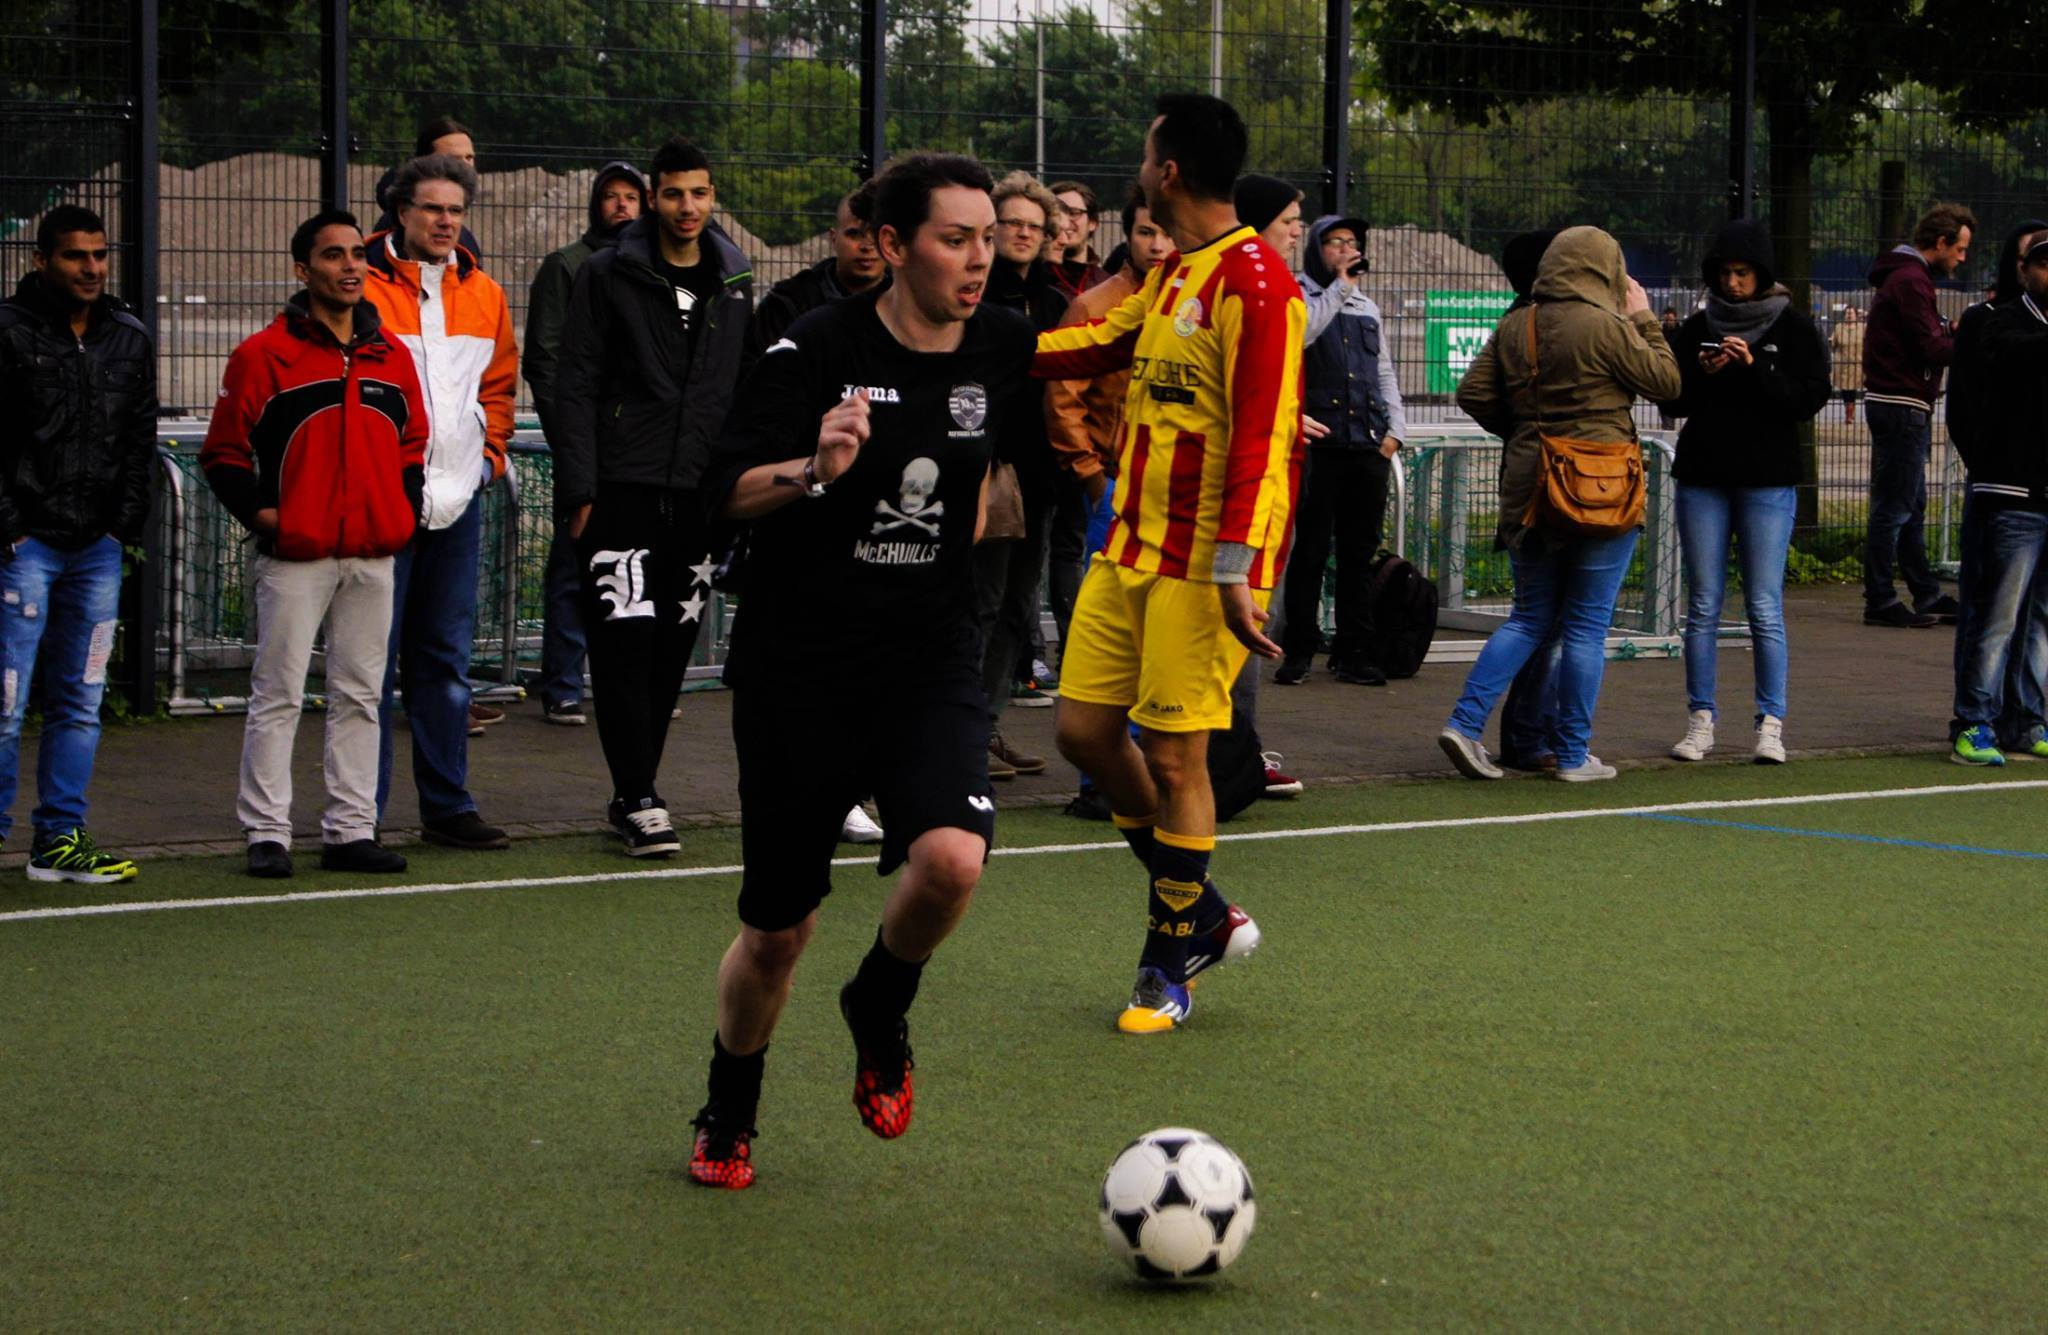 Playing against FC Lampedusa St Pauli in Hamburg in May 2015.